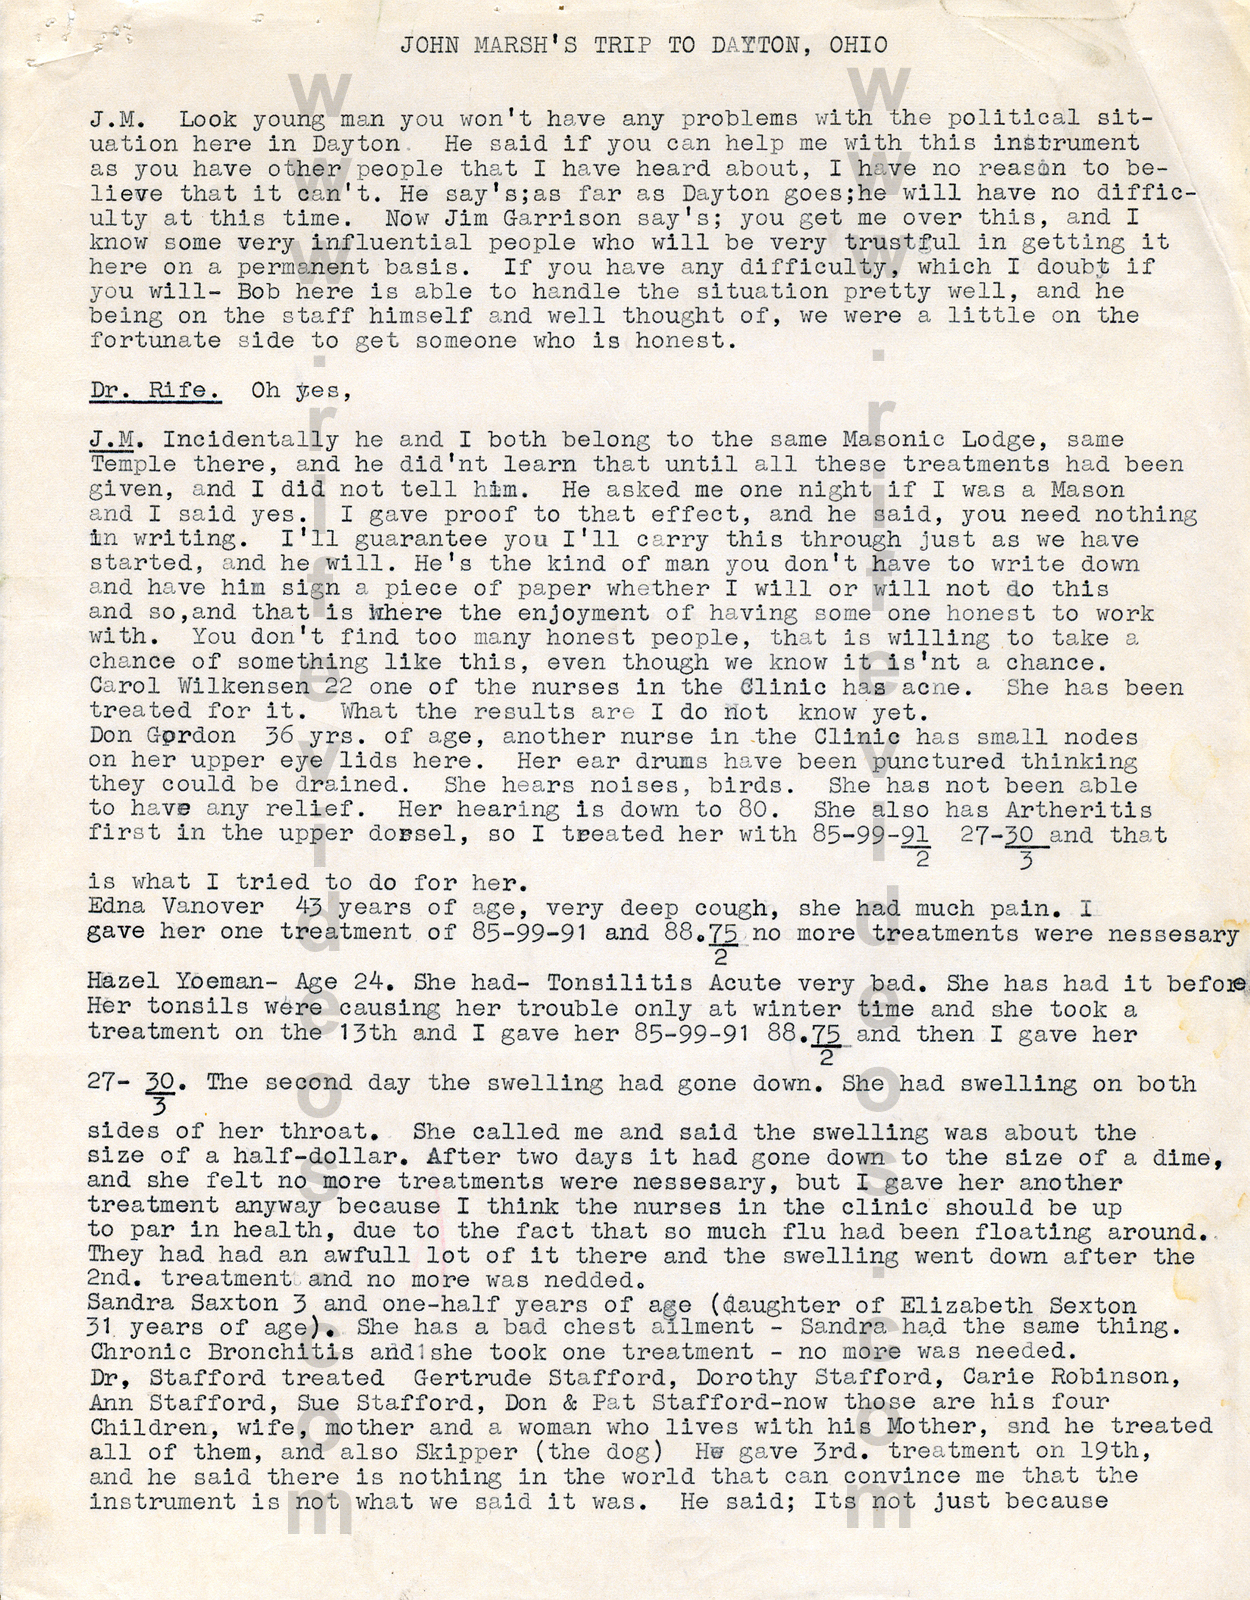 1957 John Marsh Trip To Dayton, Ohio P1 John Marsh Letters And Documents  About Dr